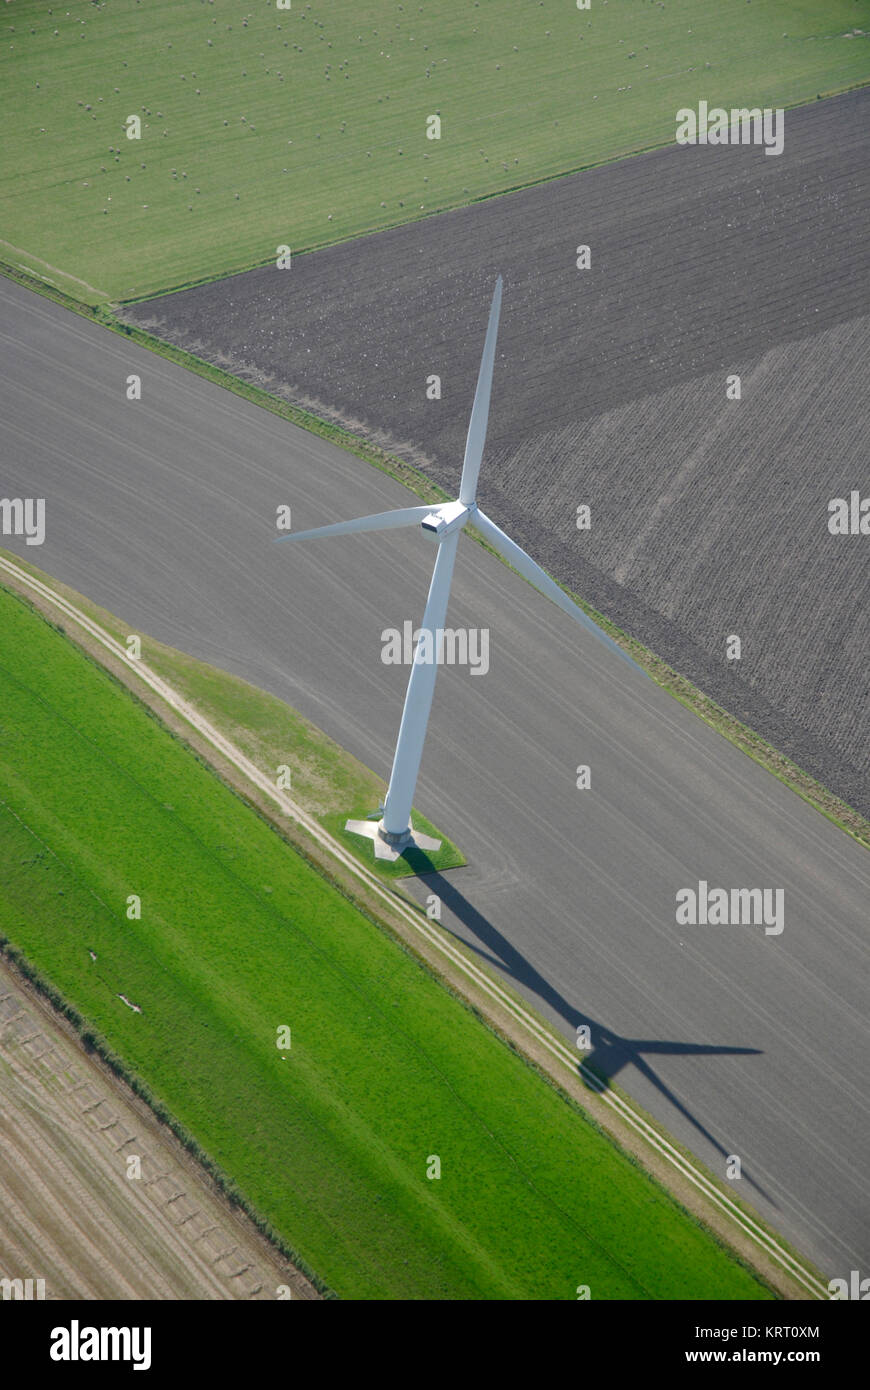 Aerial view of a wind turbine in northern Germany - Stock Image